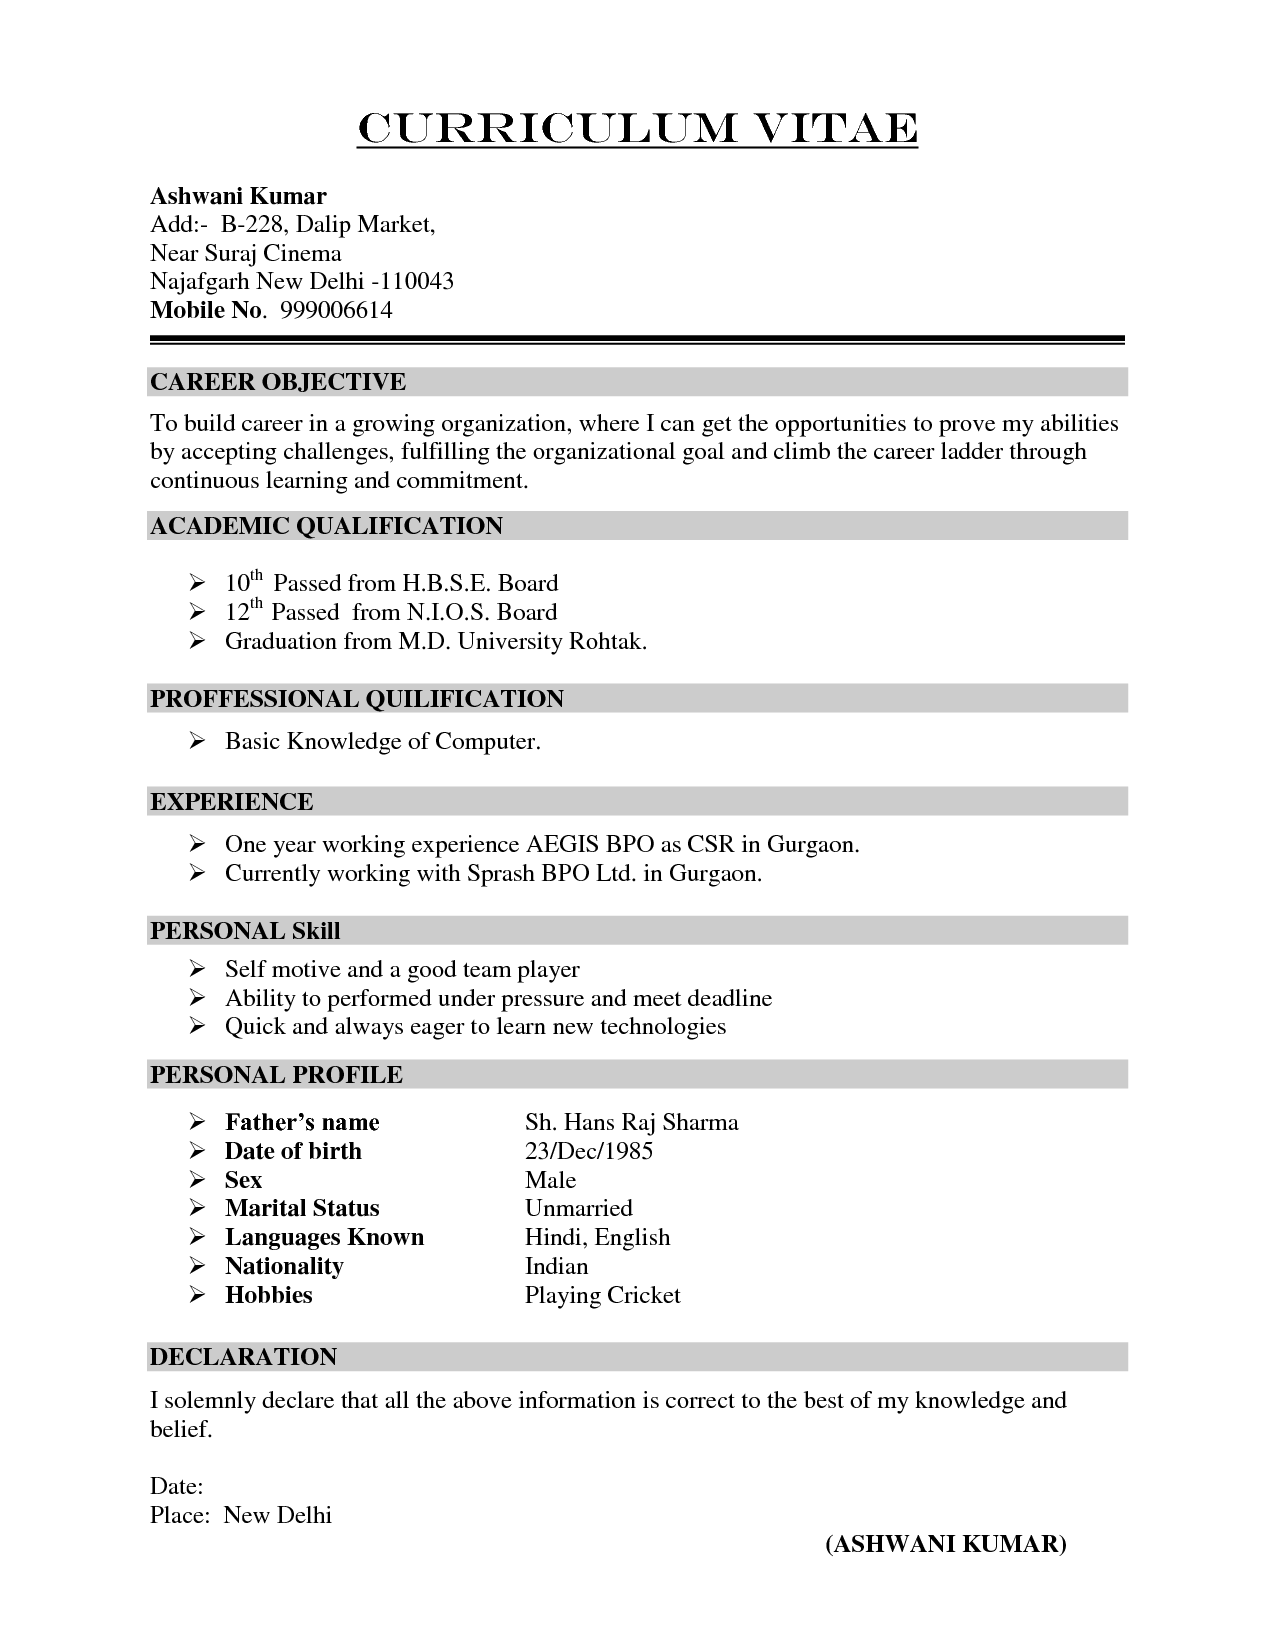 simple resume format in doc with simple resume format free download and very simple resum